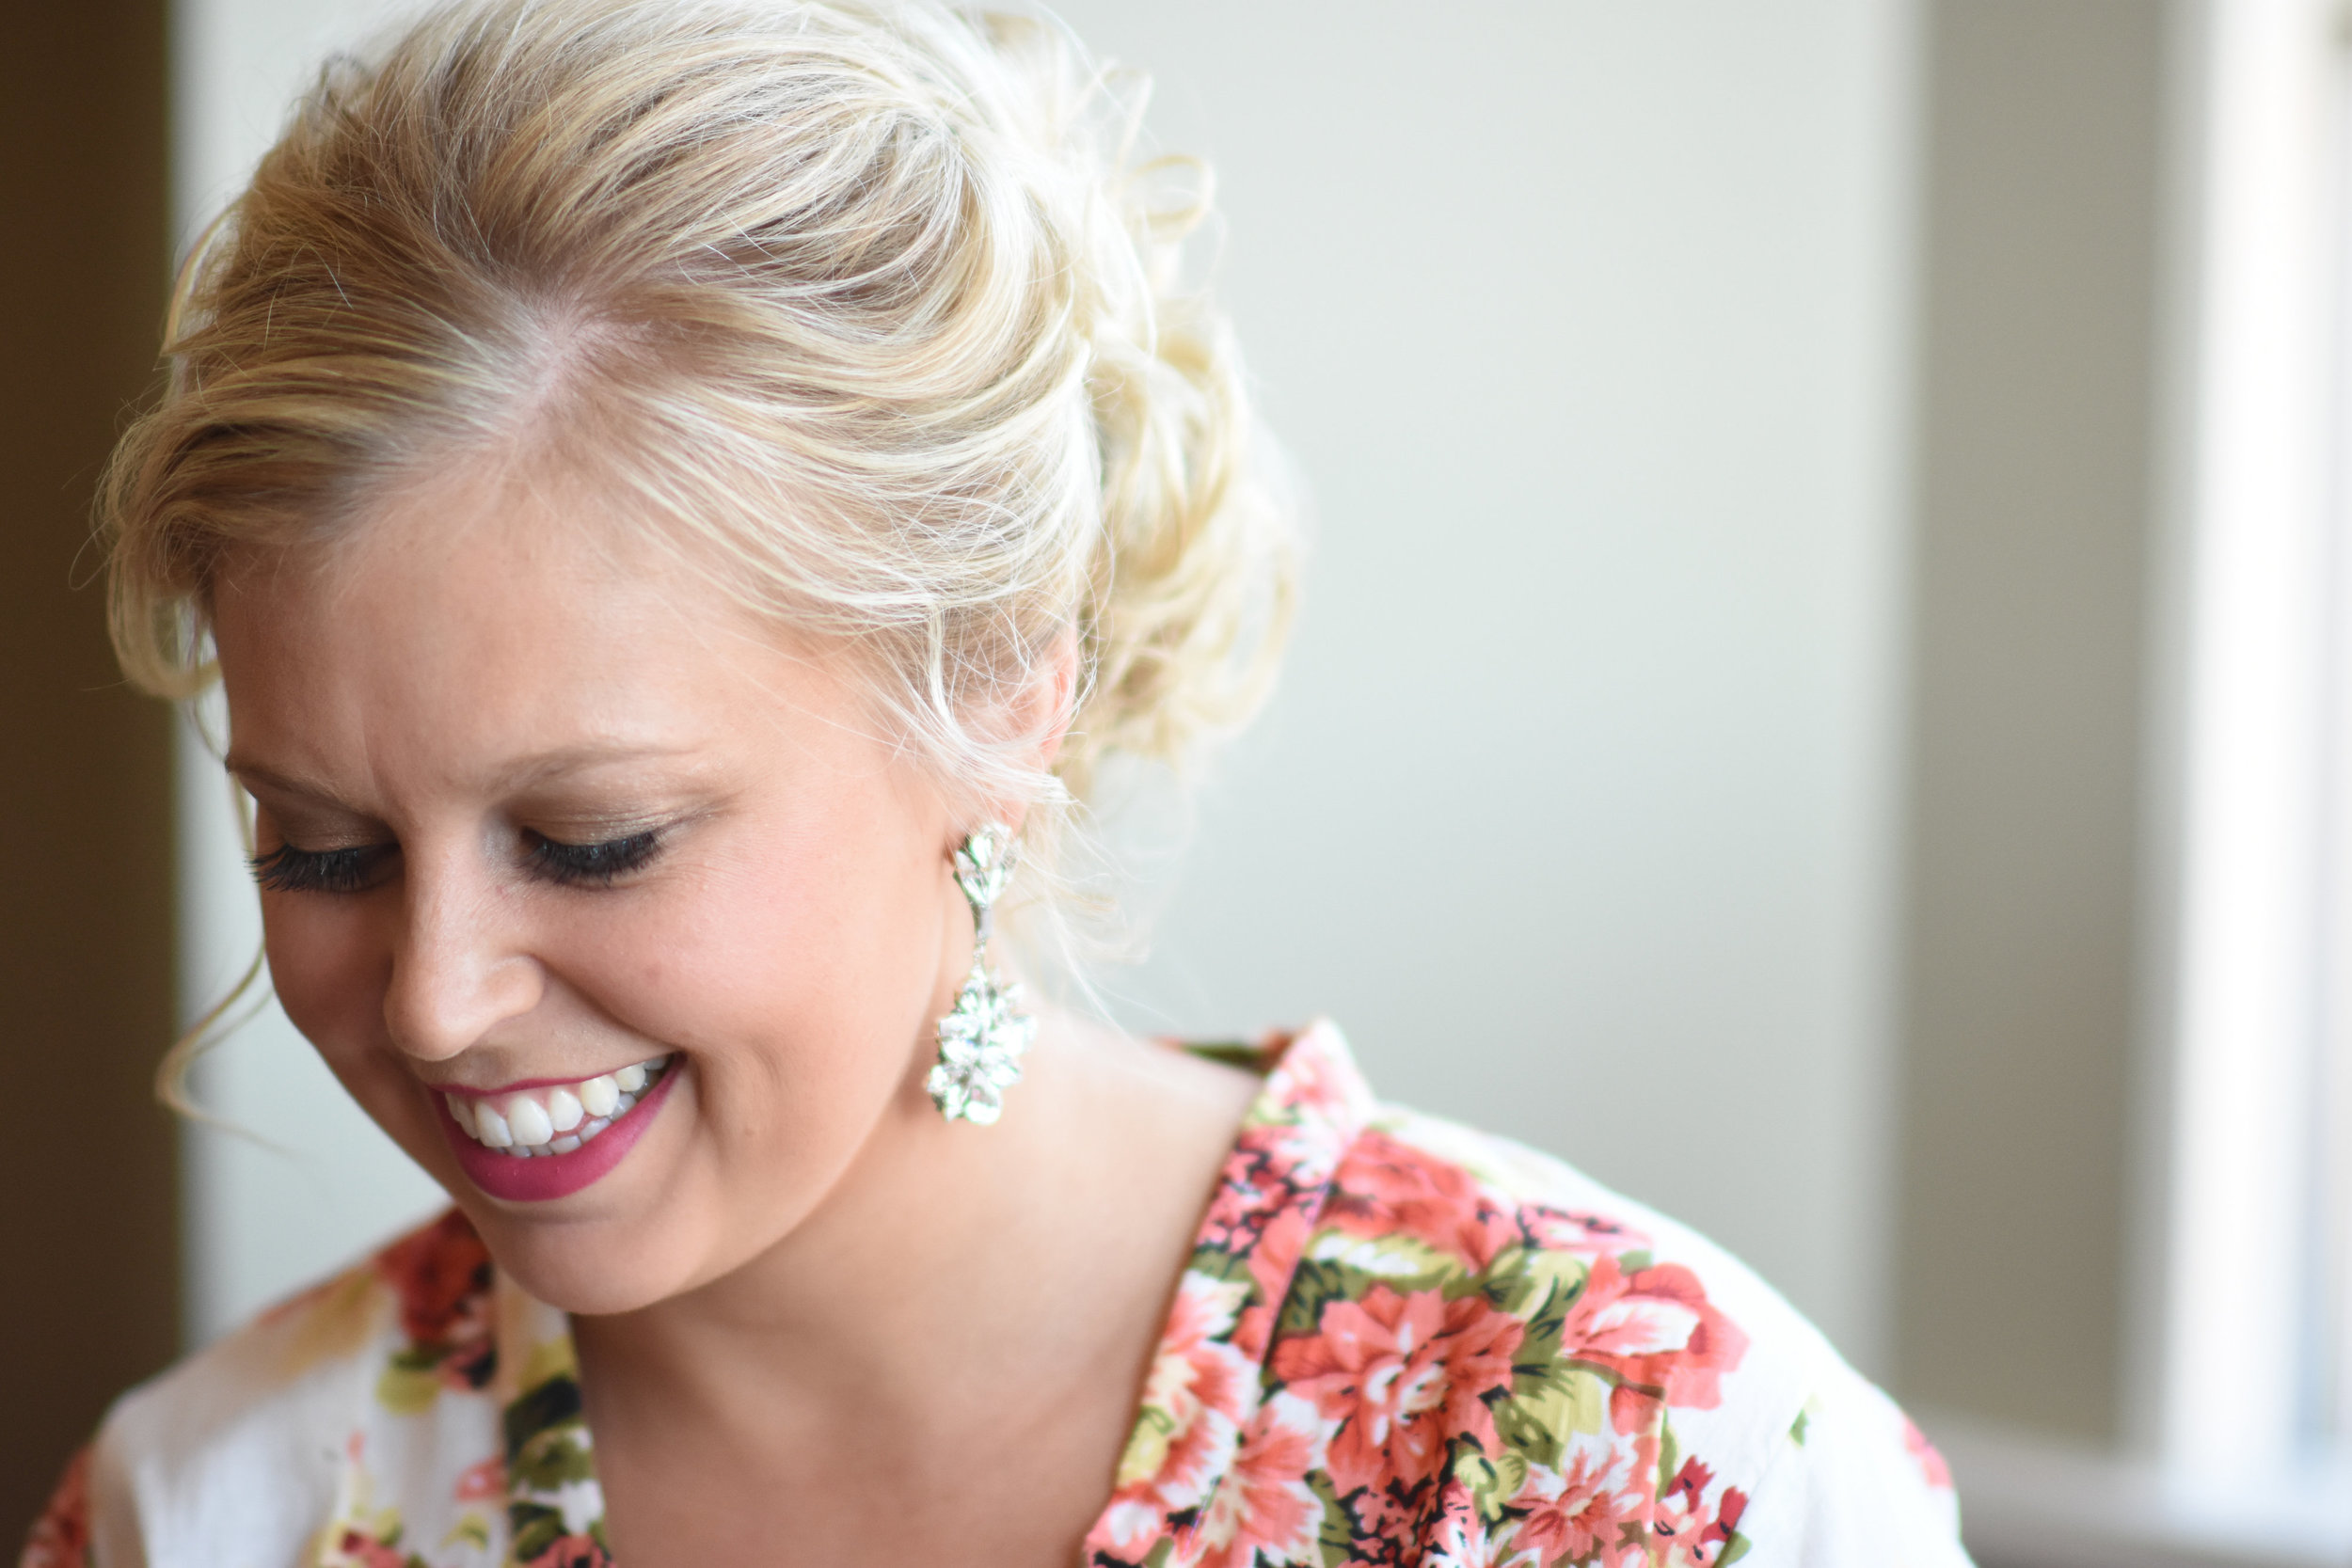 Macy Marie Photography (The Bride List Vendor)